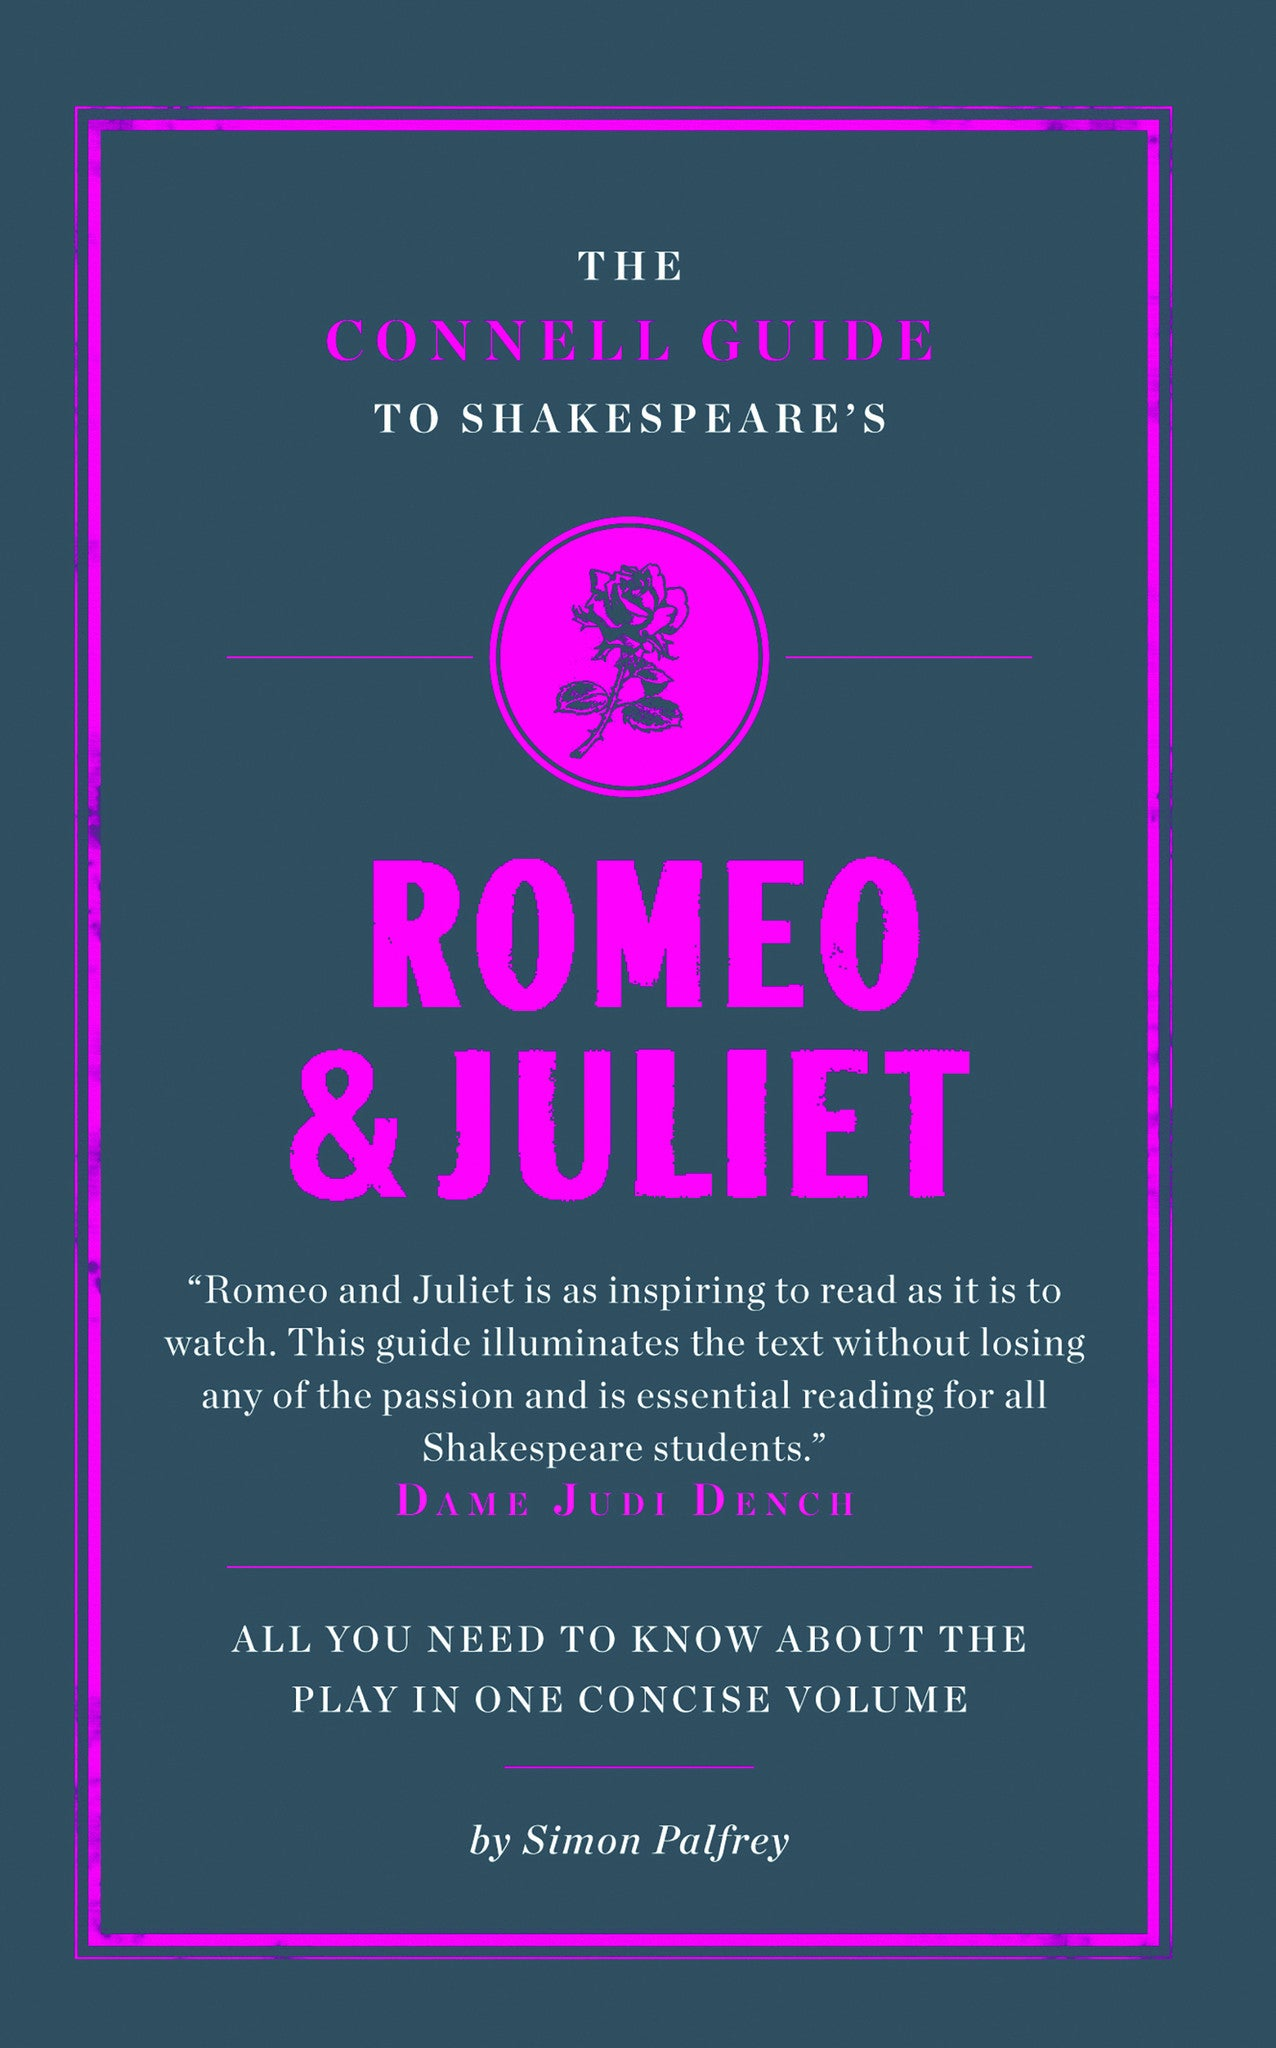 shakespeare s romeo and juliet study guide connell guides shakespeare s romeo and juliet study guide